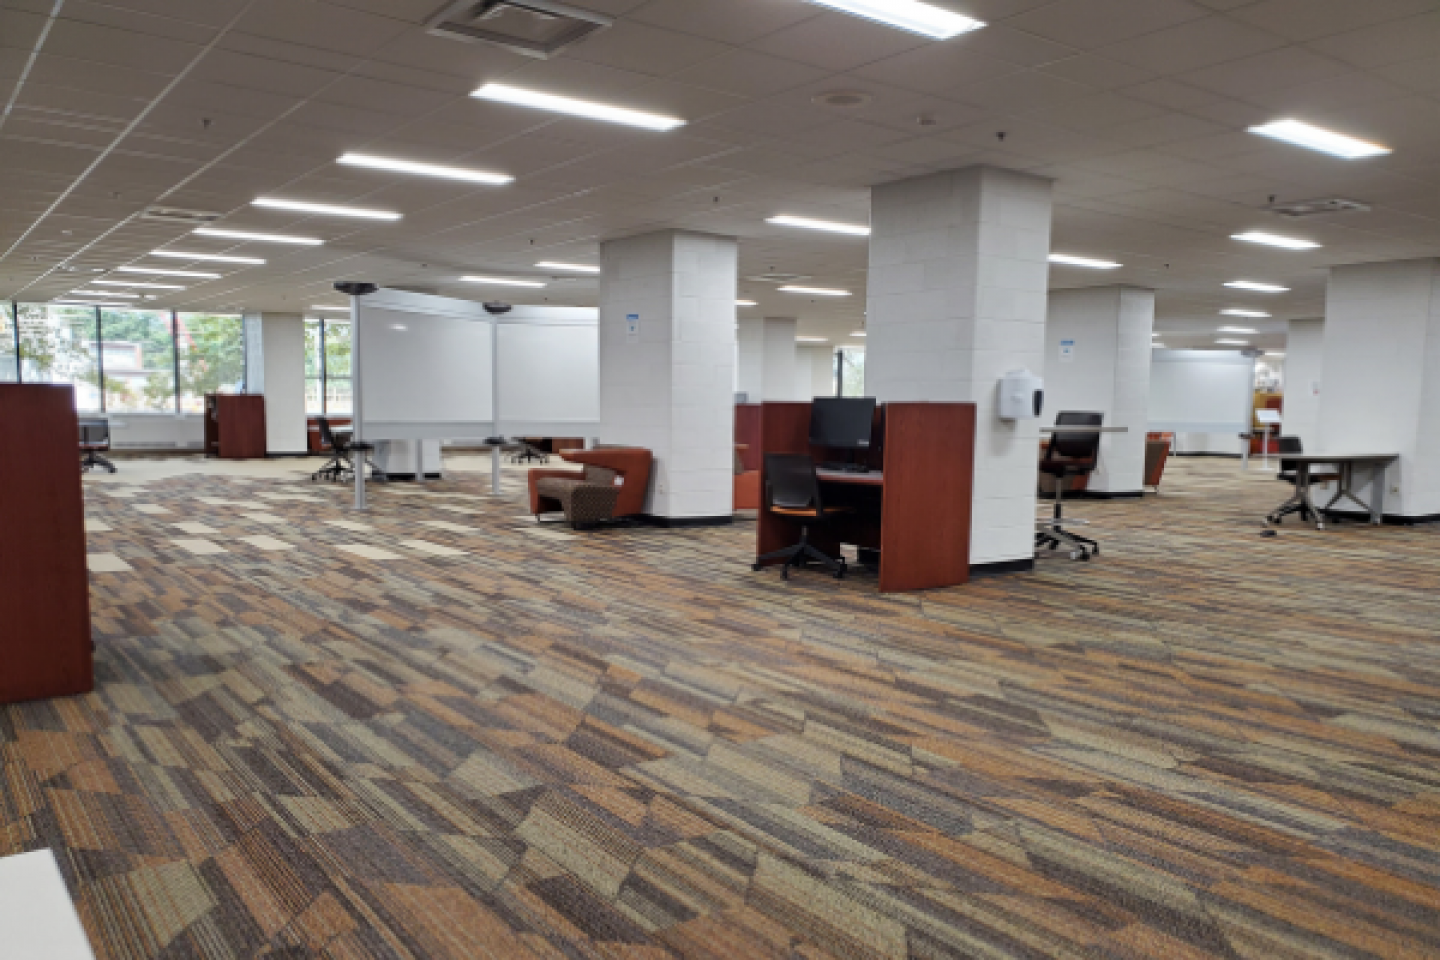 Photo of empty space in WMU libaries.